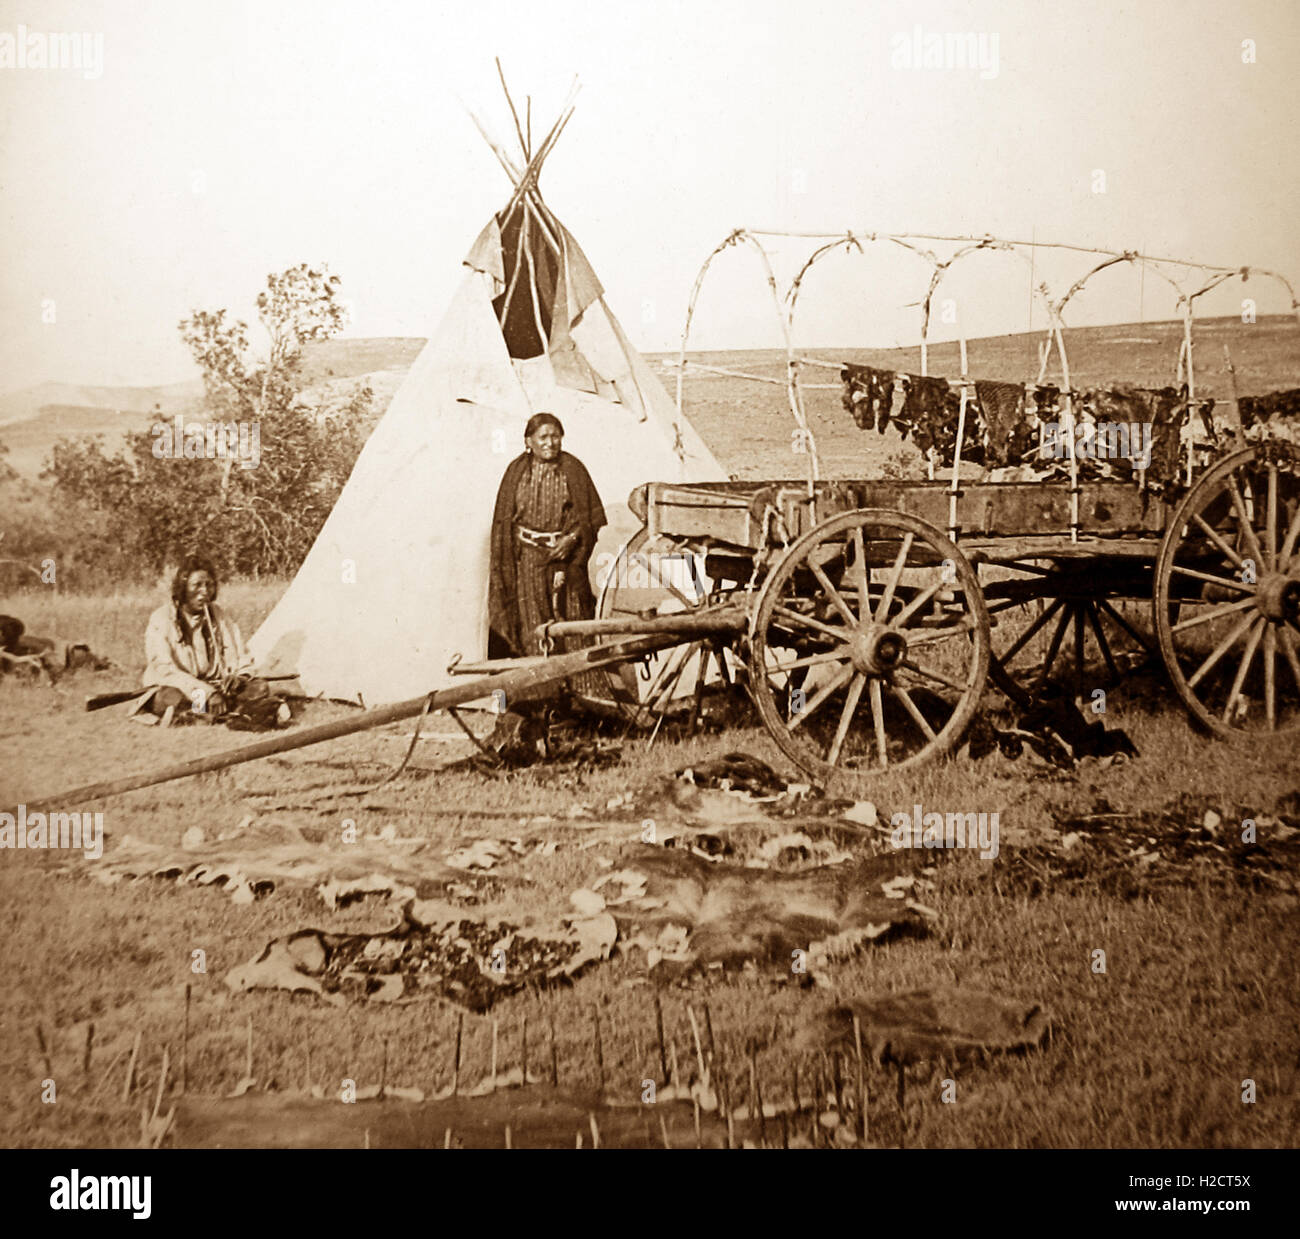 Sioux Indian fur camp on the Plains, USA - early 1900s - Stock Image